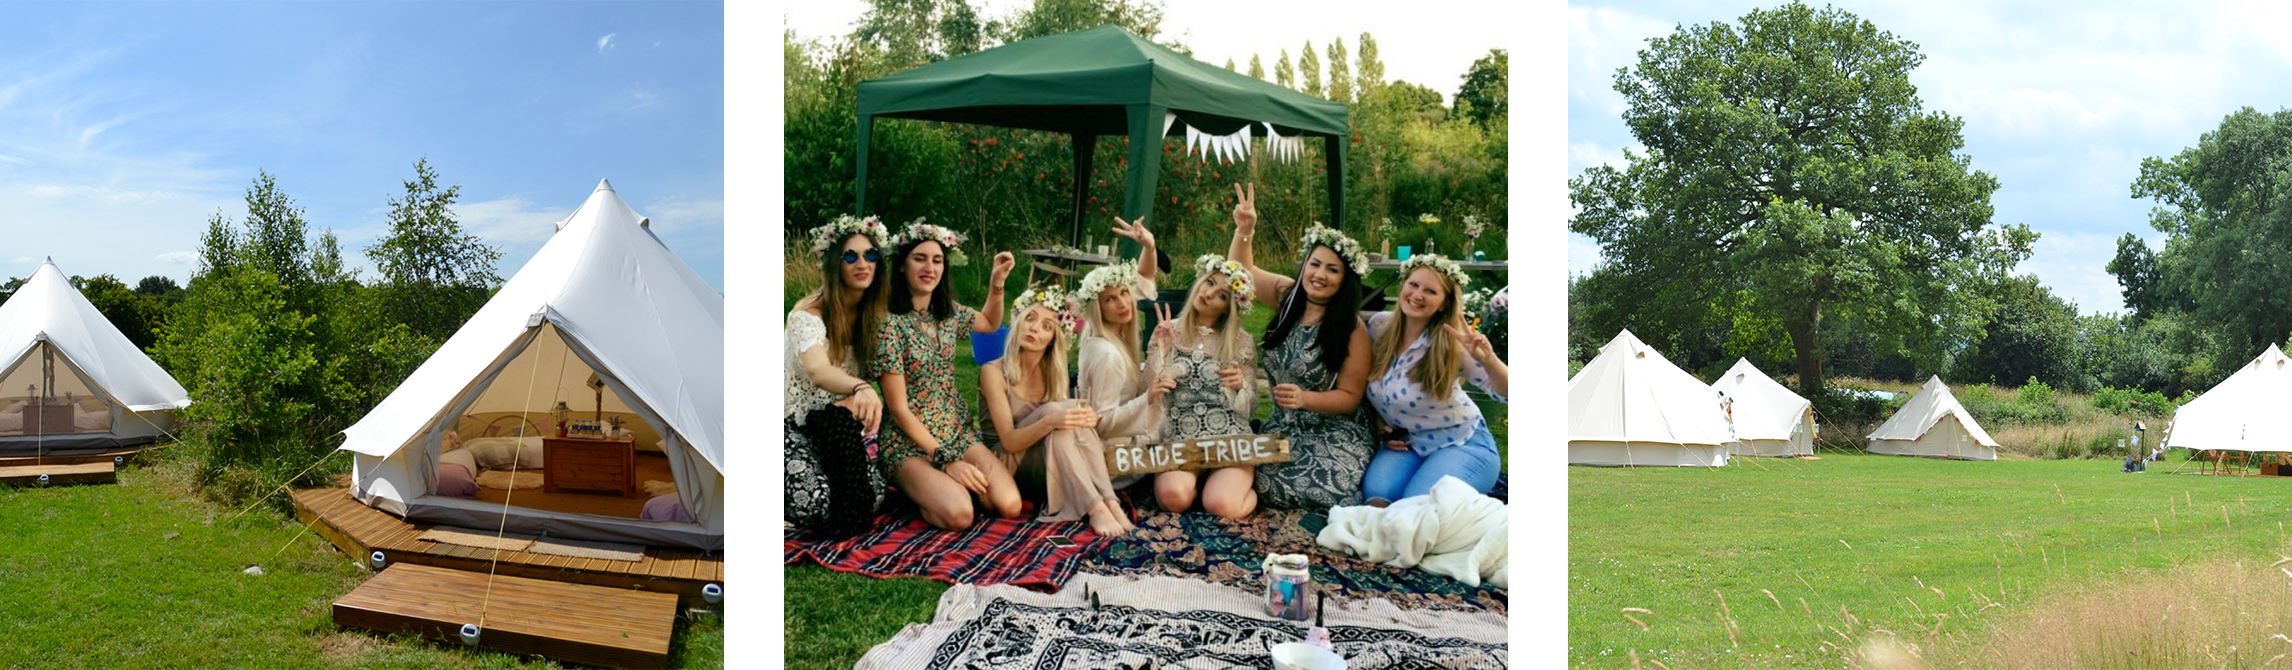 A hen camp party glamping experience with friends and bell tents